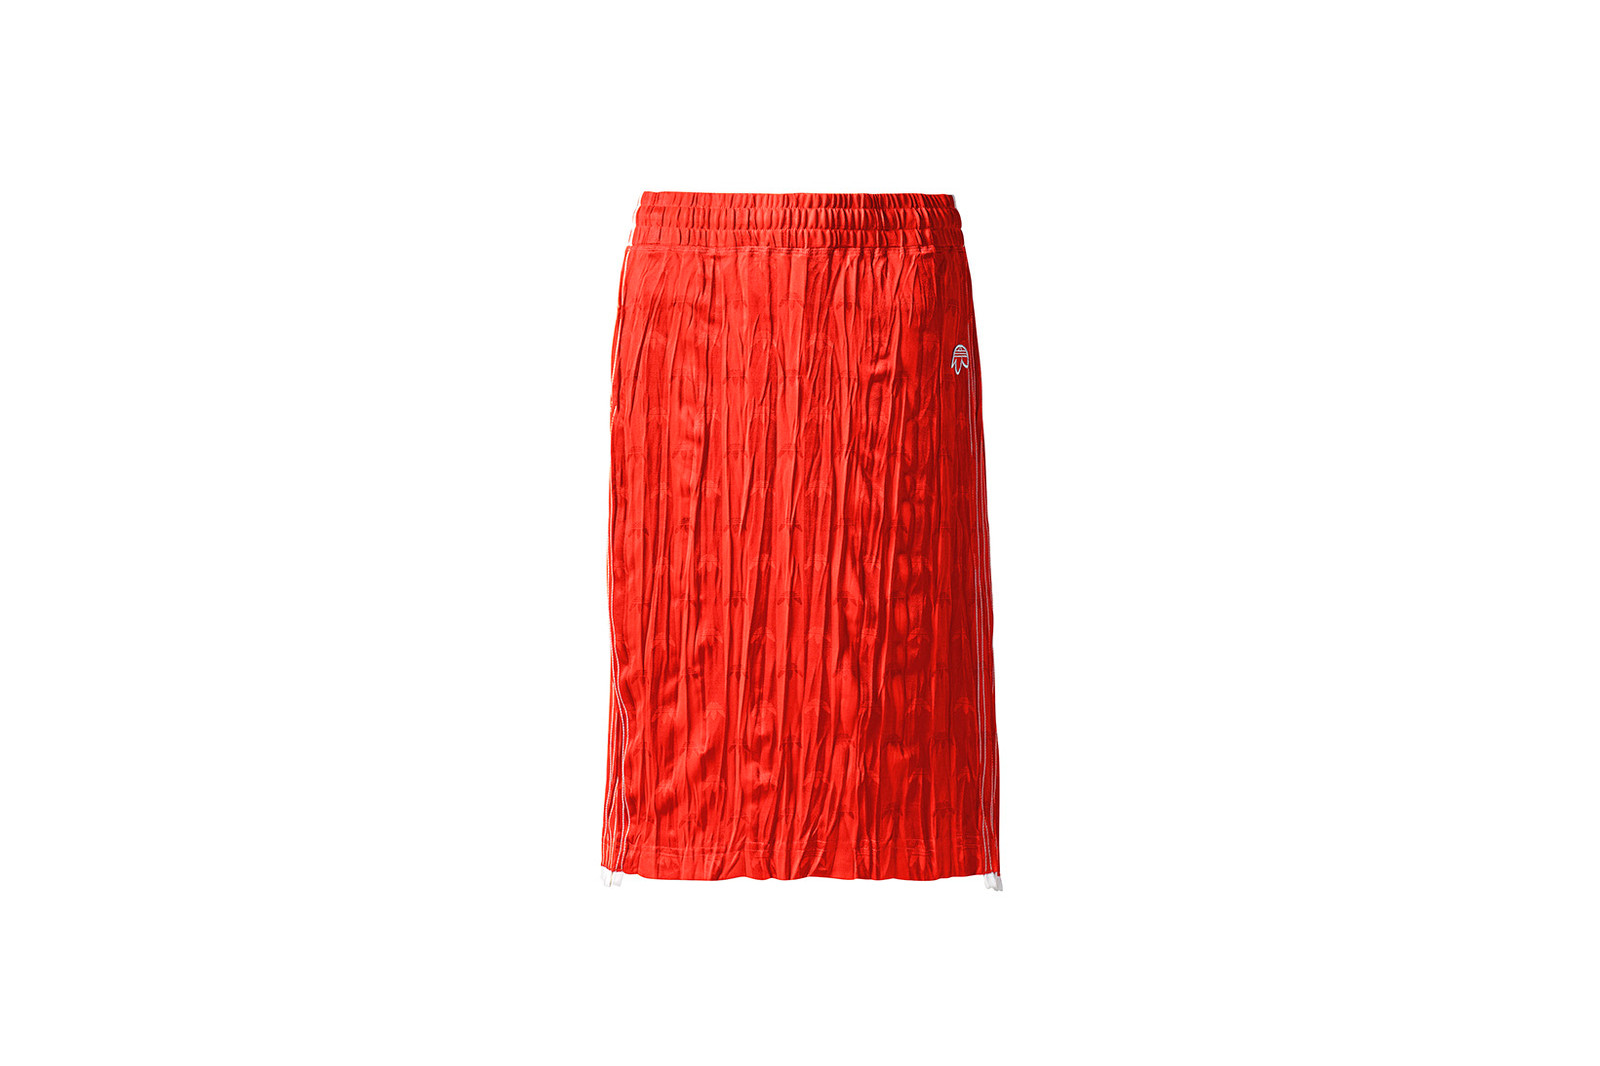 Alexander Wang adidas Originals Season 3 Drop 3 Dress T-shirt Shorts Skirt Windbreaker Slides Turnout Sneakers